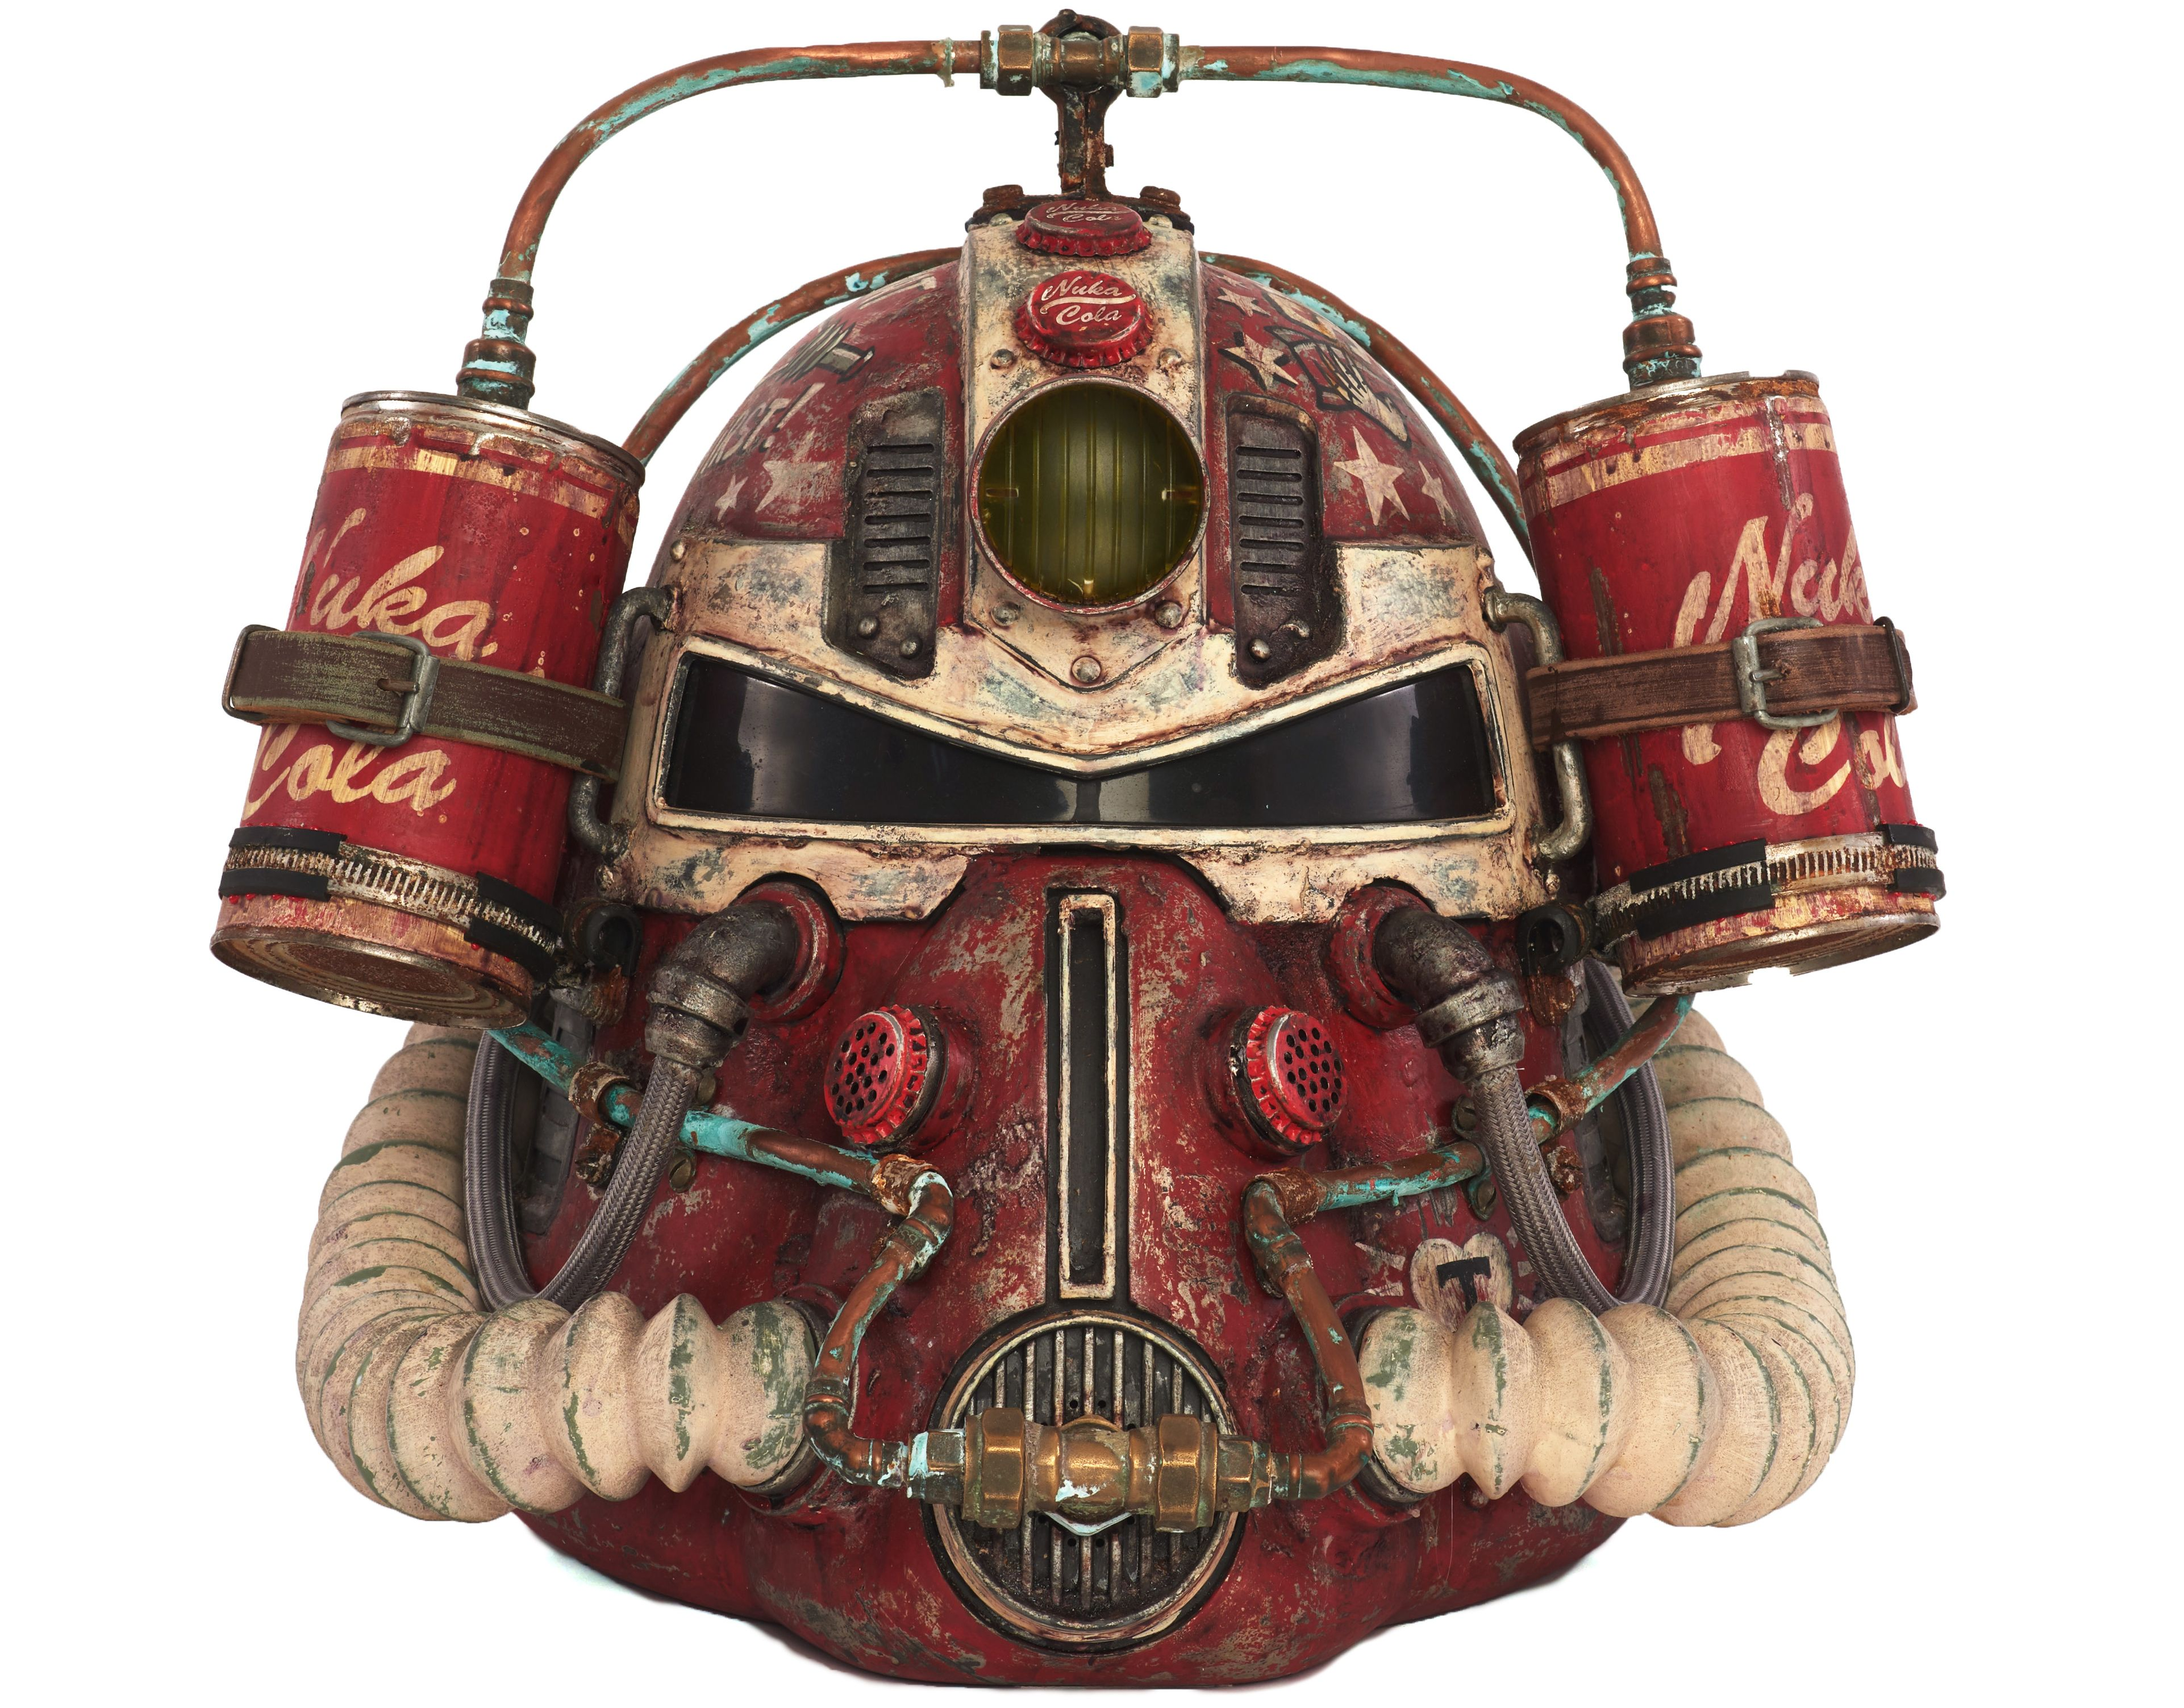 Fallout 76 Presents Helmets For Habitat An Auction For T51s